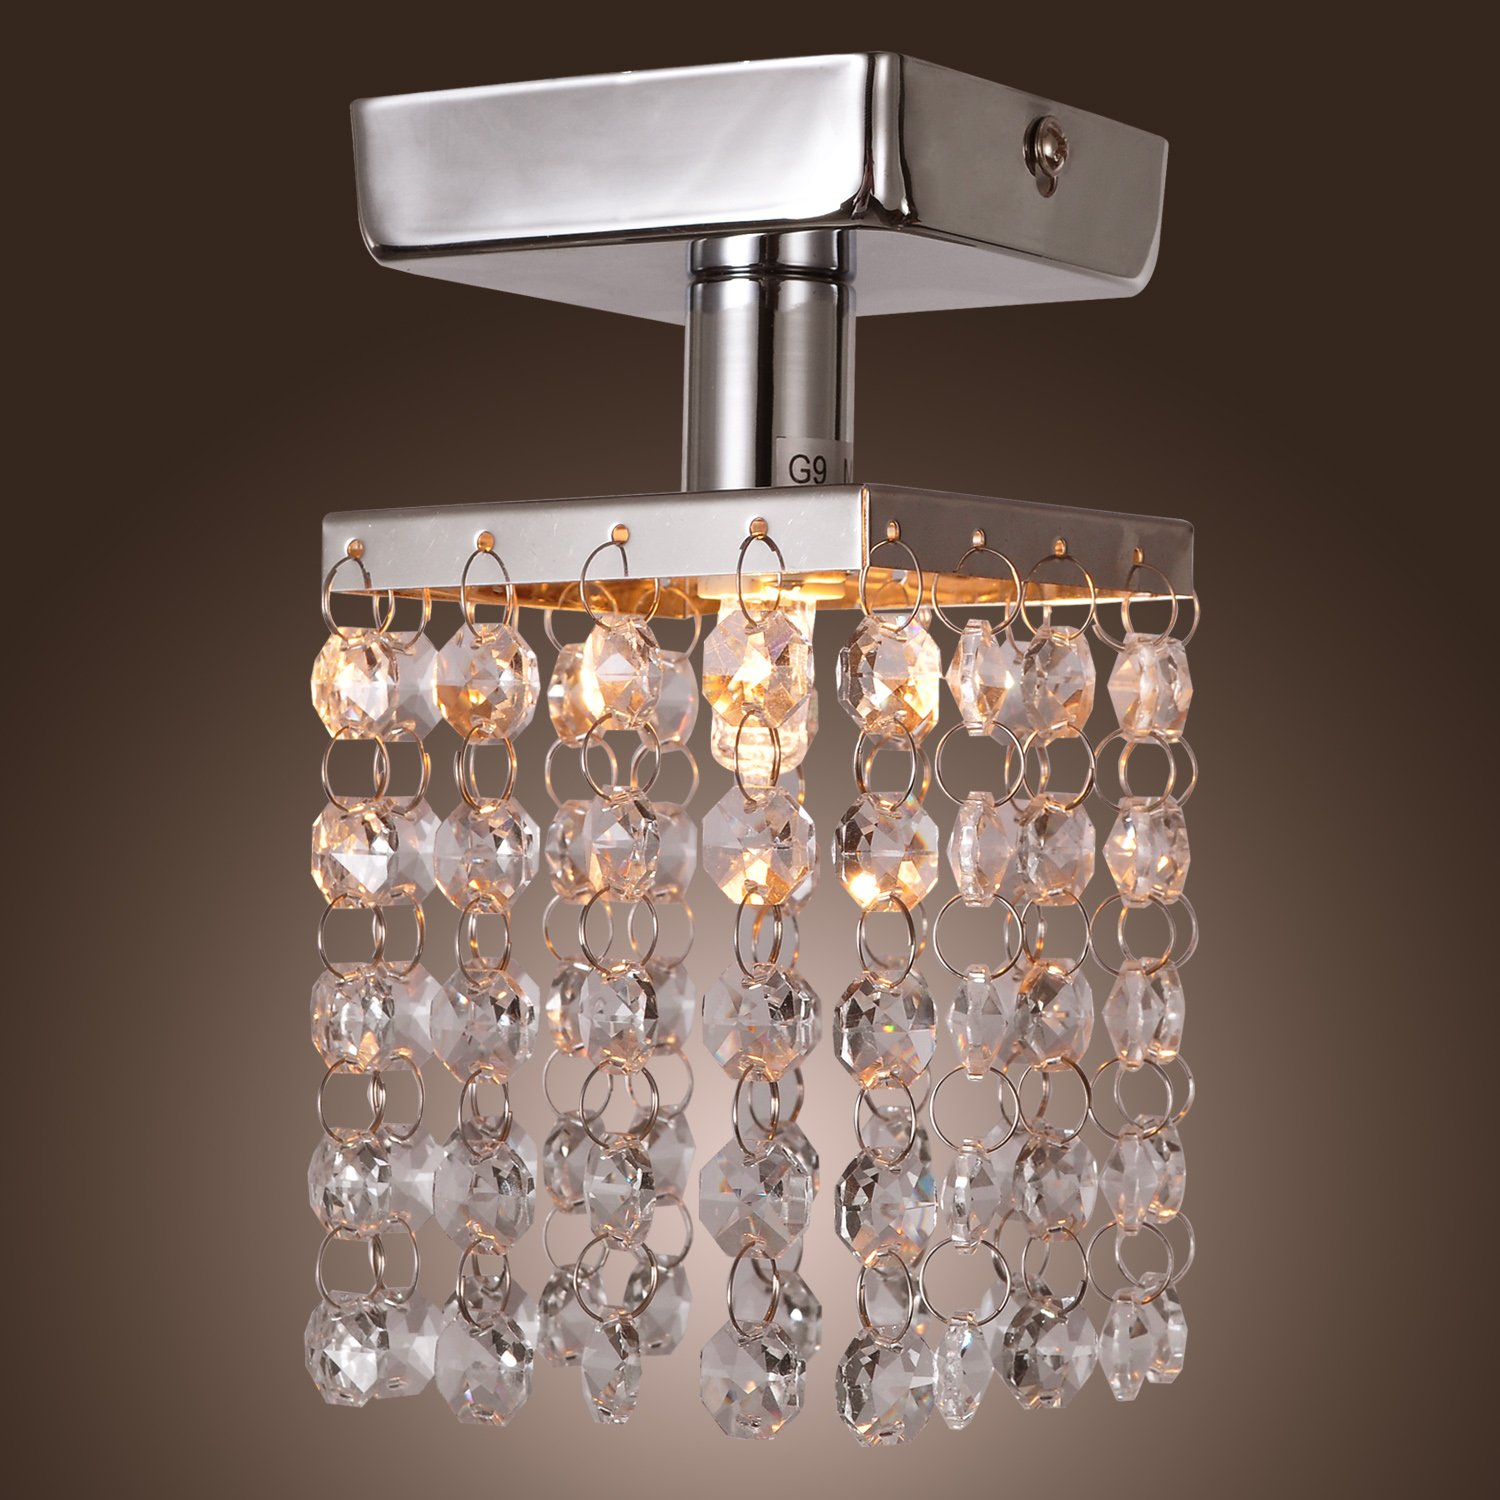 LightInTheBox Mini Semi Flush Mount in Crystal Chrome Finish